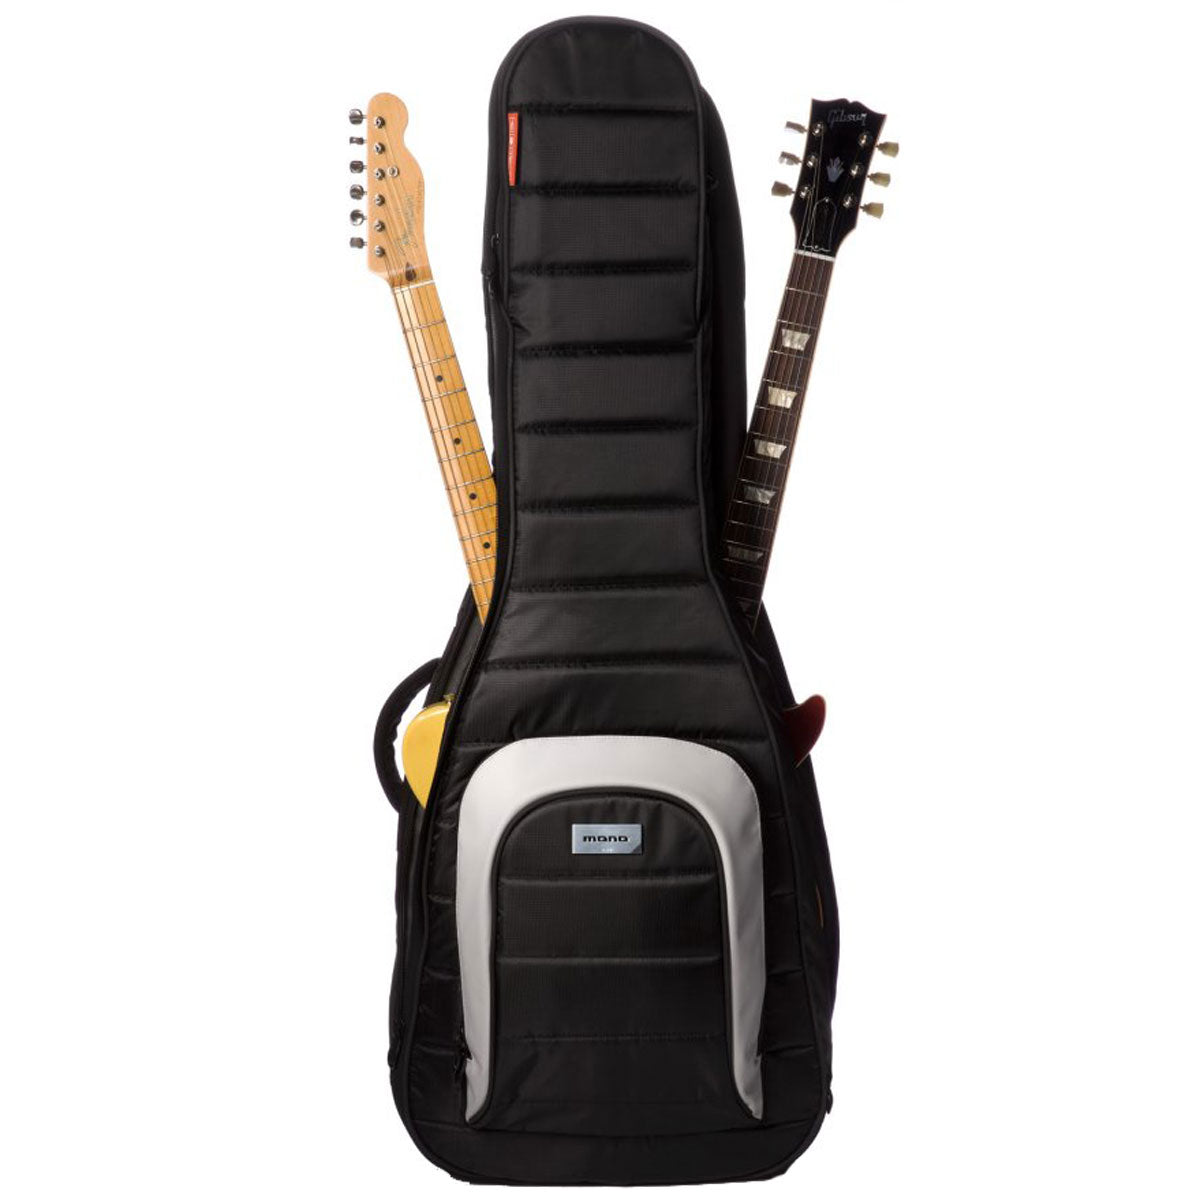 Mono Dual Electric Gig Bag - Black